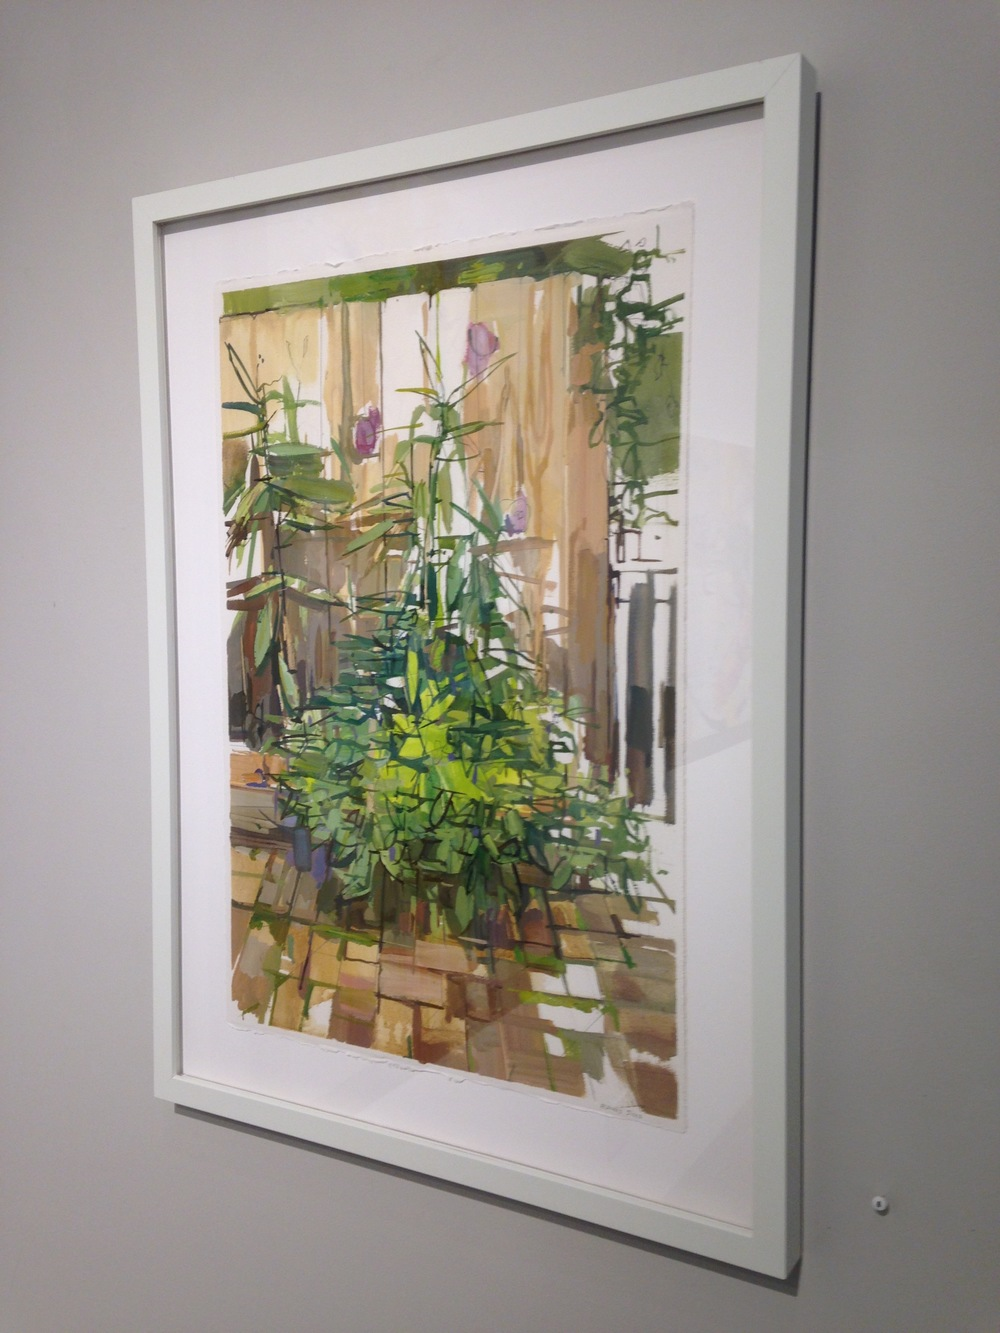 Installation view,  Wildflower Planter , 2015, oil and graphite on paper, 22 x 15 inches (unframed), $1350. (unframed), 27.25 x 20.25 inches (framed), $1500. (framed)